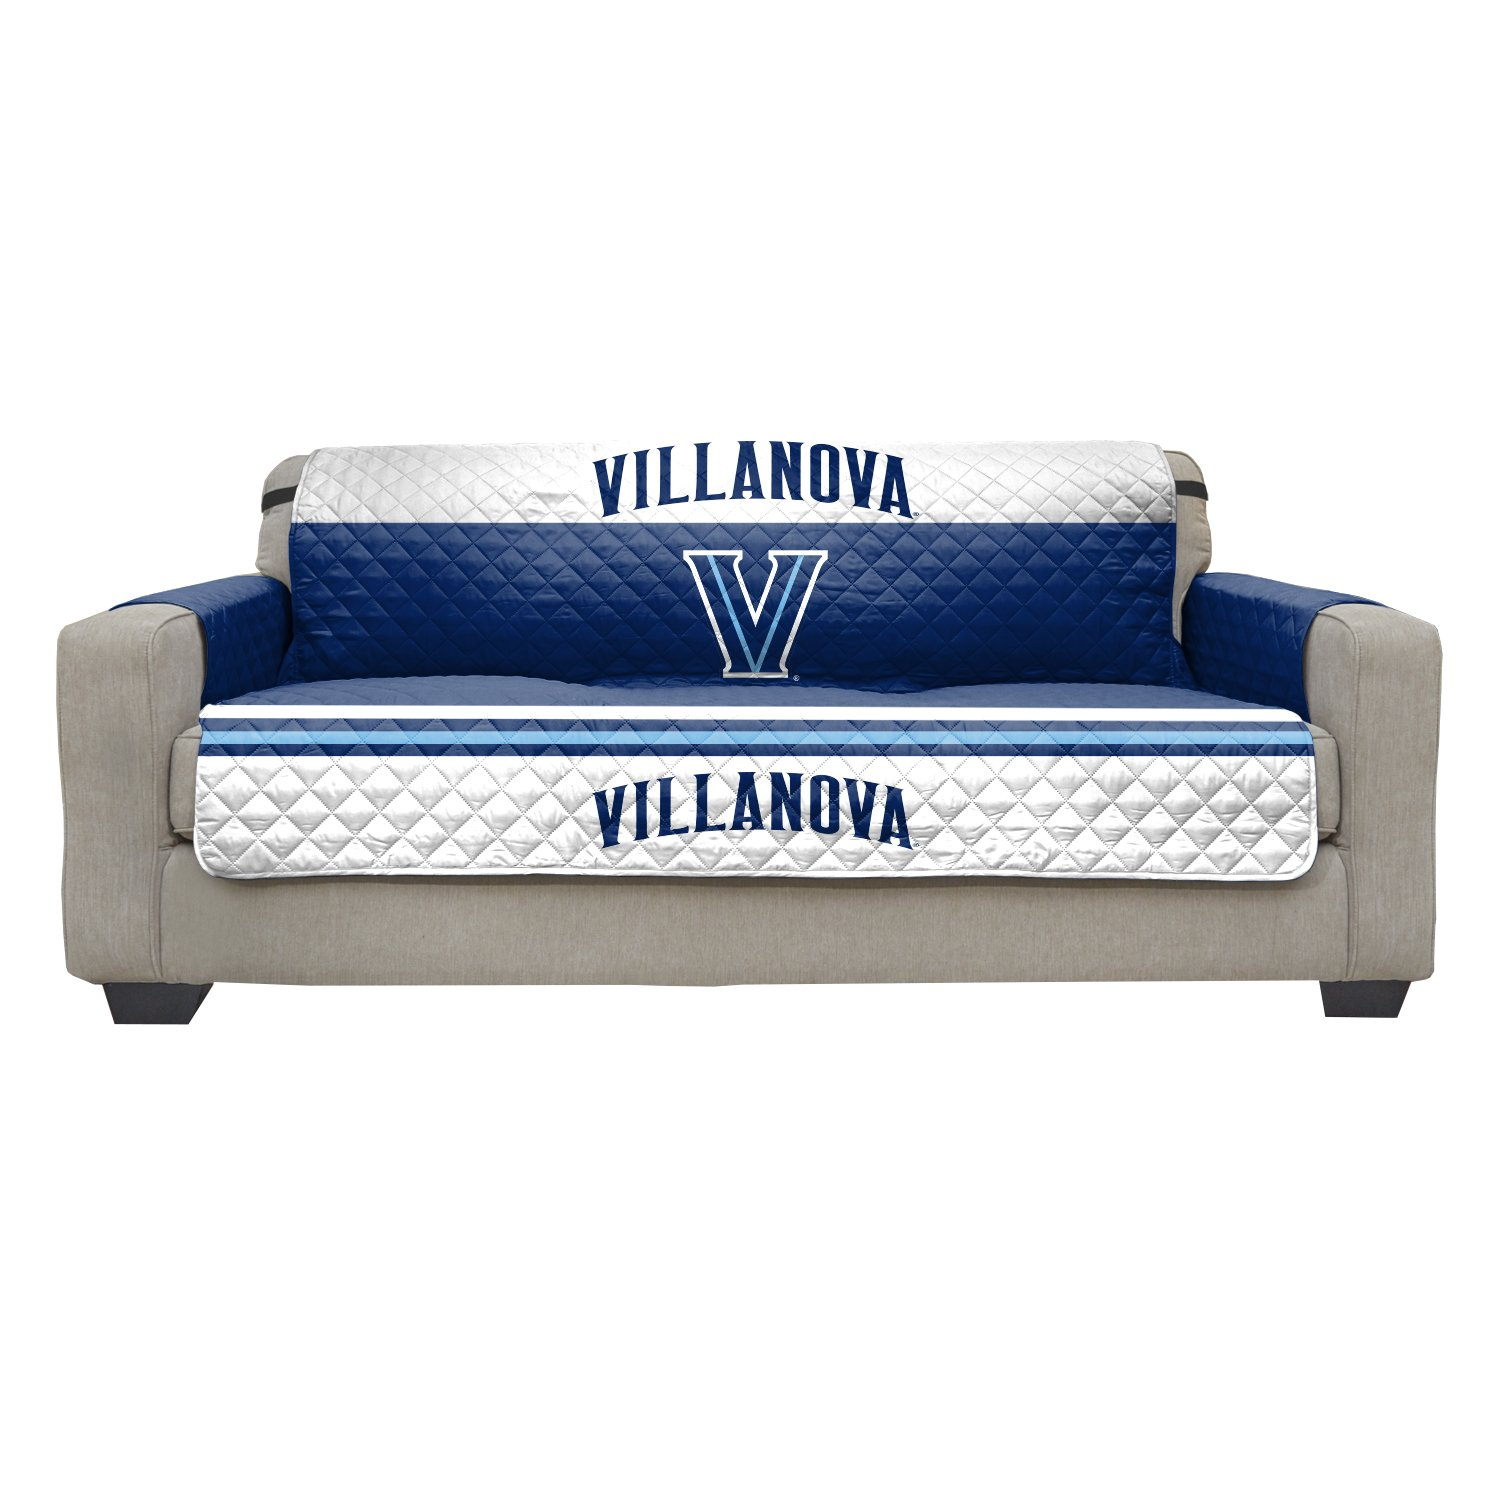 Reversible Couch Cover - College Team Sofa Slipcover Set / Furniture Protector - NCAA Officially Licensed (Couch / Sofa, Villanova University Wildcats)